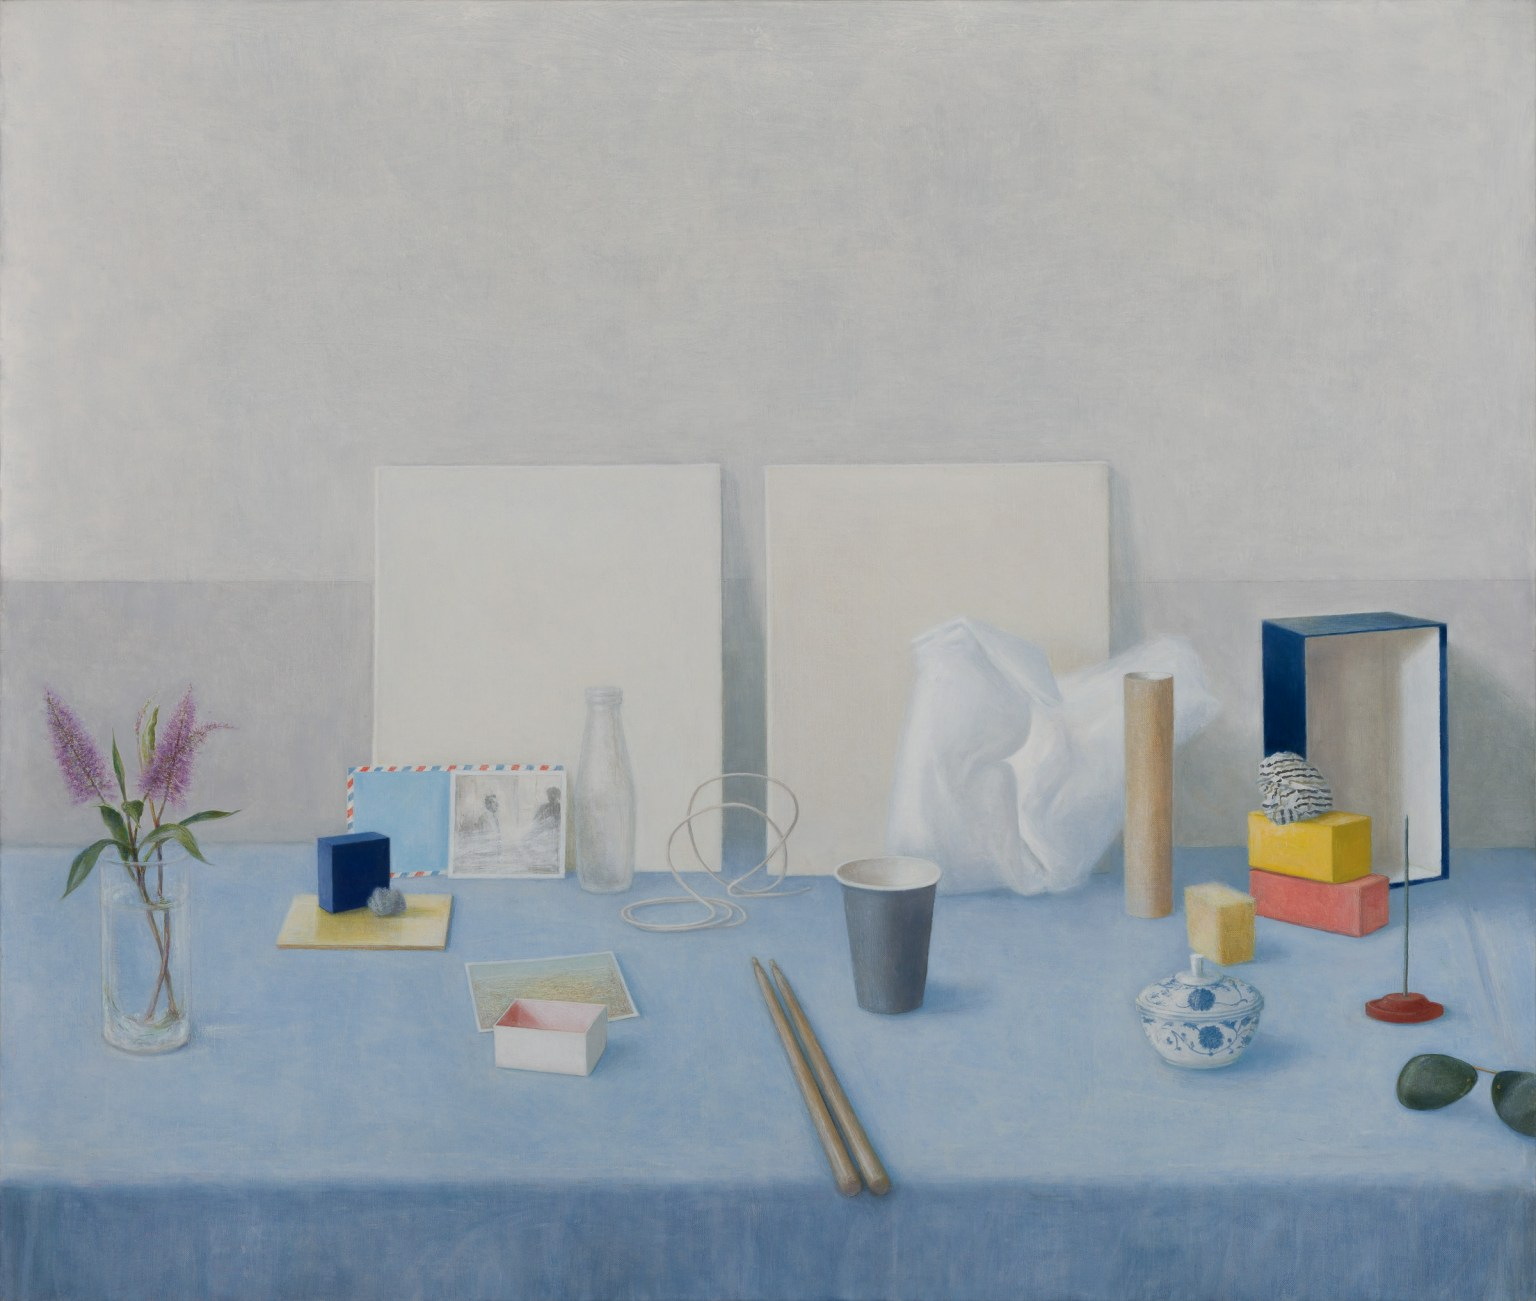 John Scurry painting 'Distancing' 2020